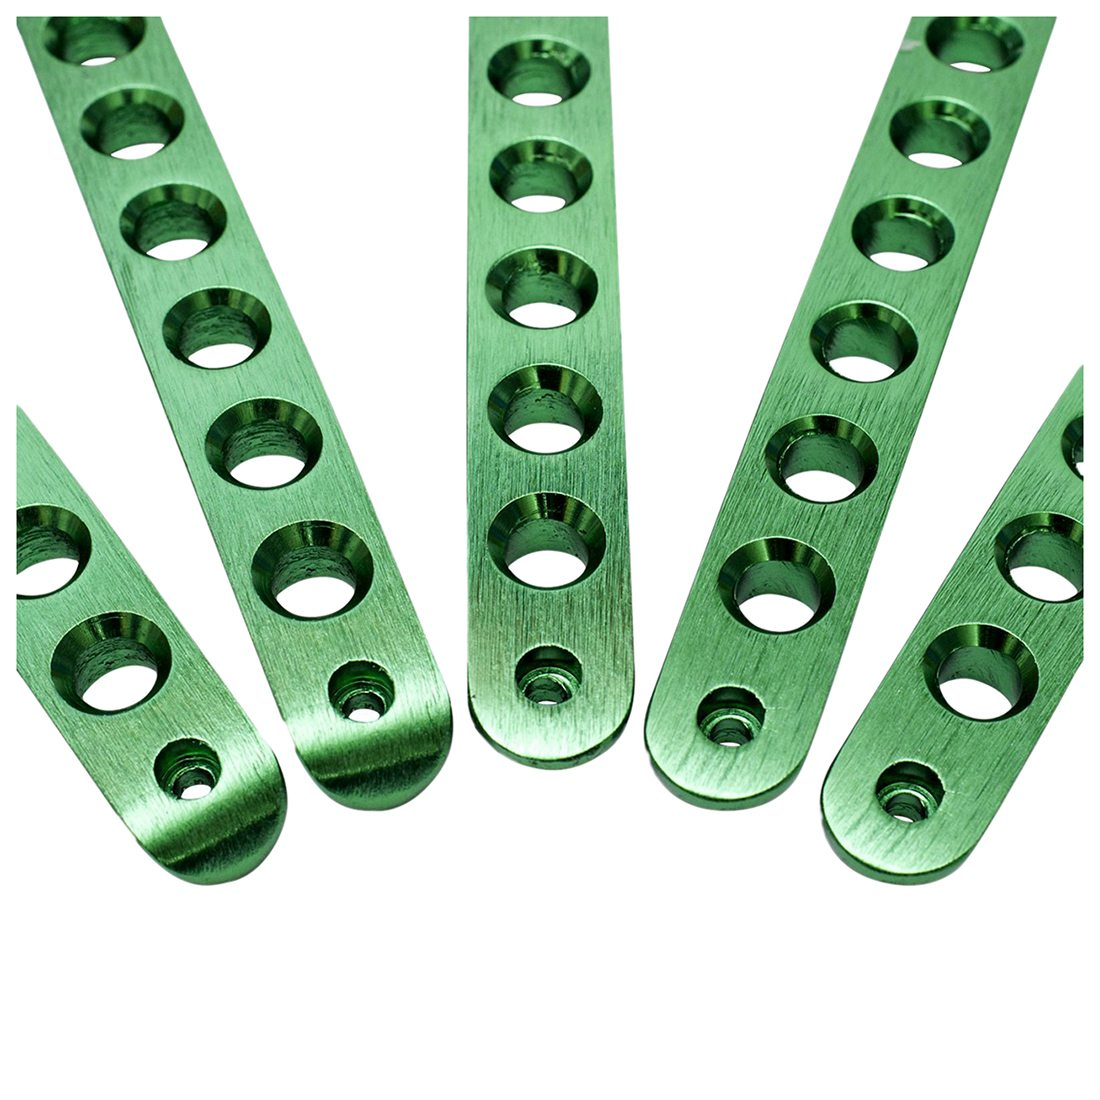 5pcs Aluminum Front Rear Door Grab Handle Inserts Cover For Jeep Parts Wrangler Jk Jku Accessories Green In Exterior Handles From Automobiles